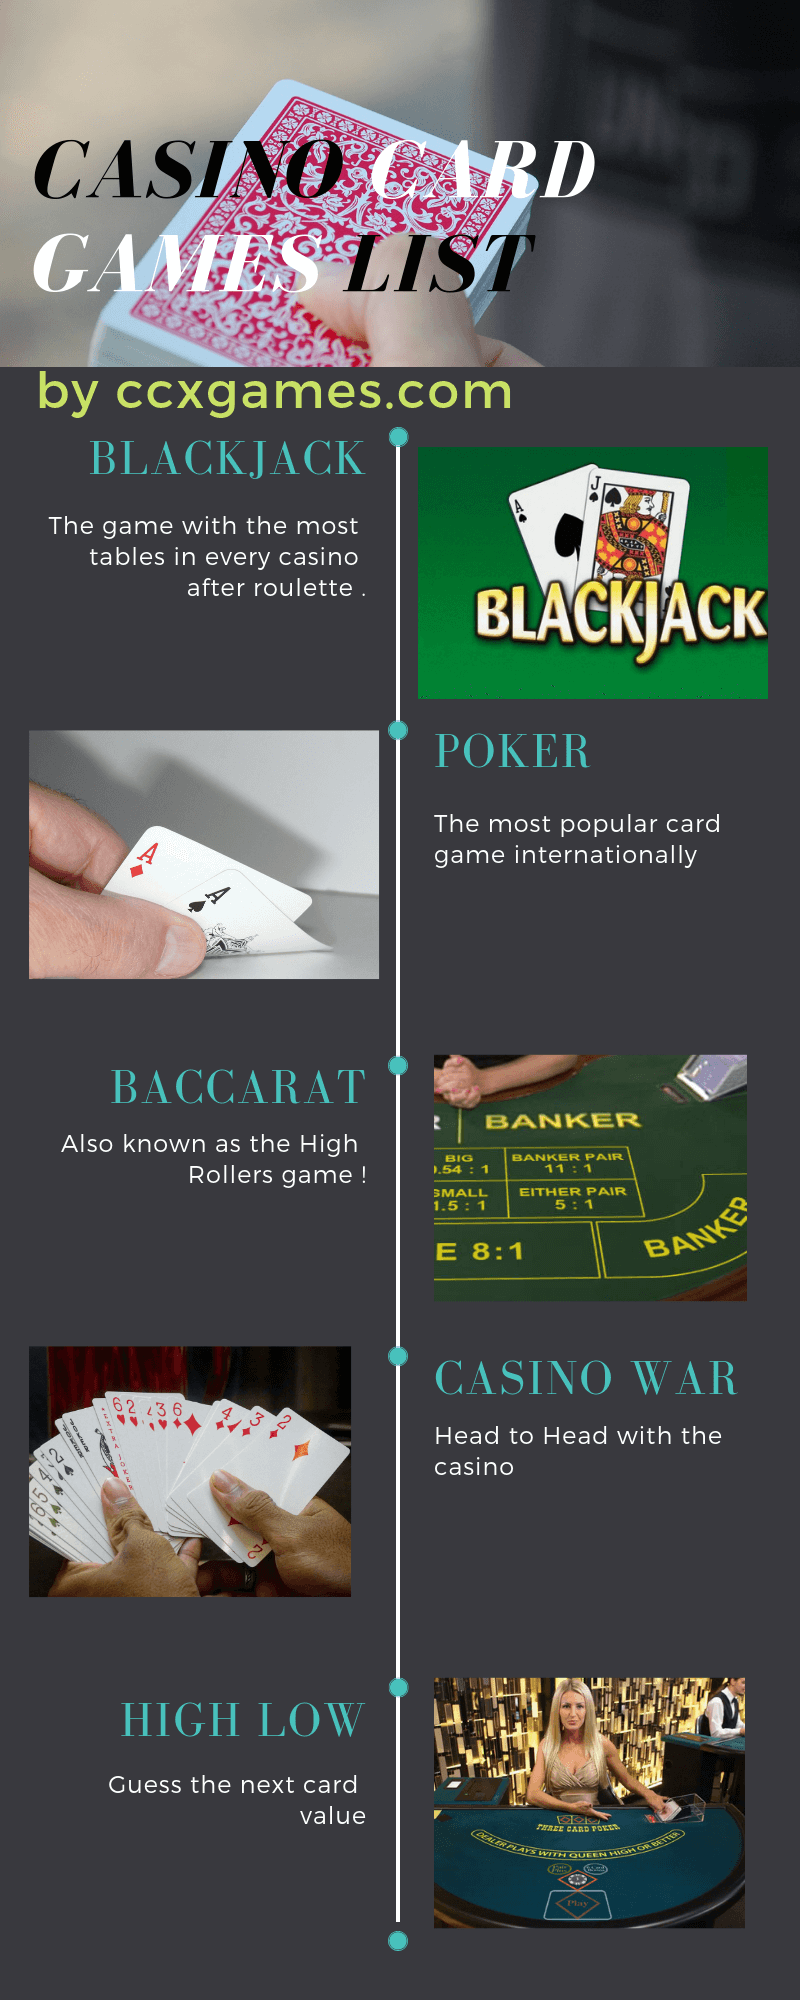 casino-card-games-list-infographic-plaza